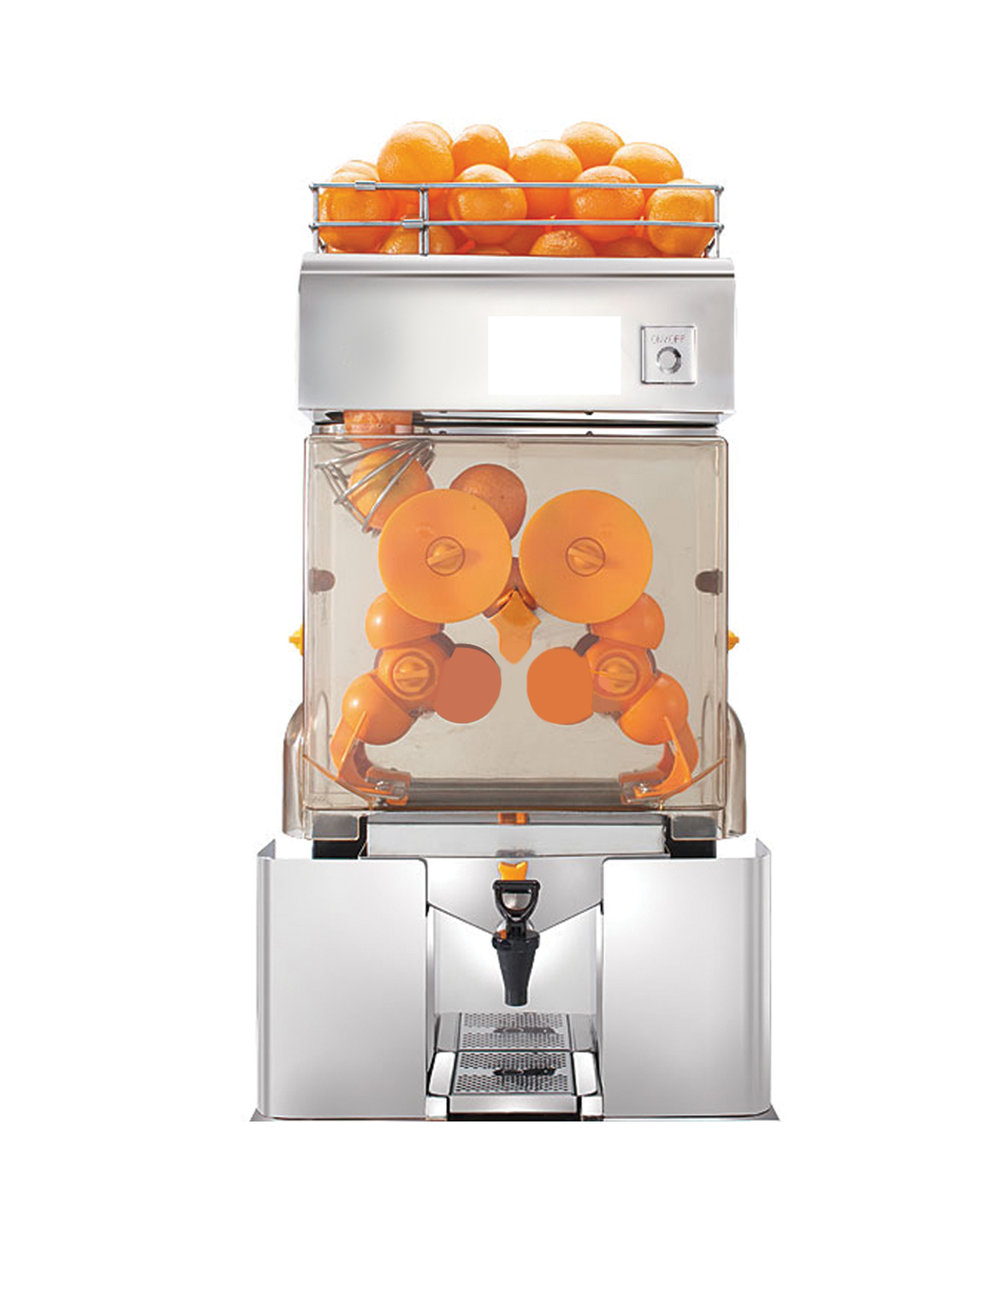 citra-cruz-20s-citrus-juicer.jpg